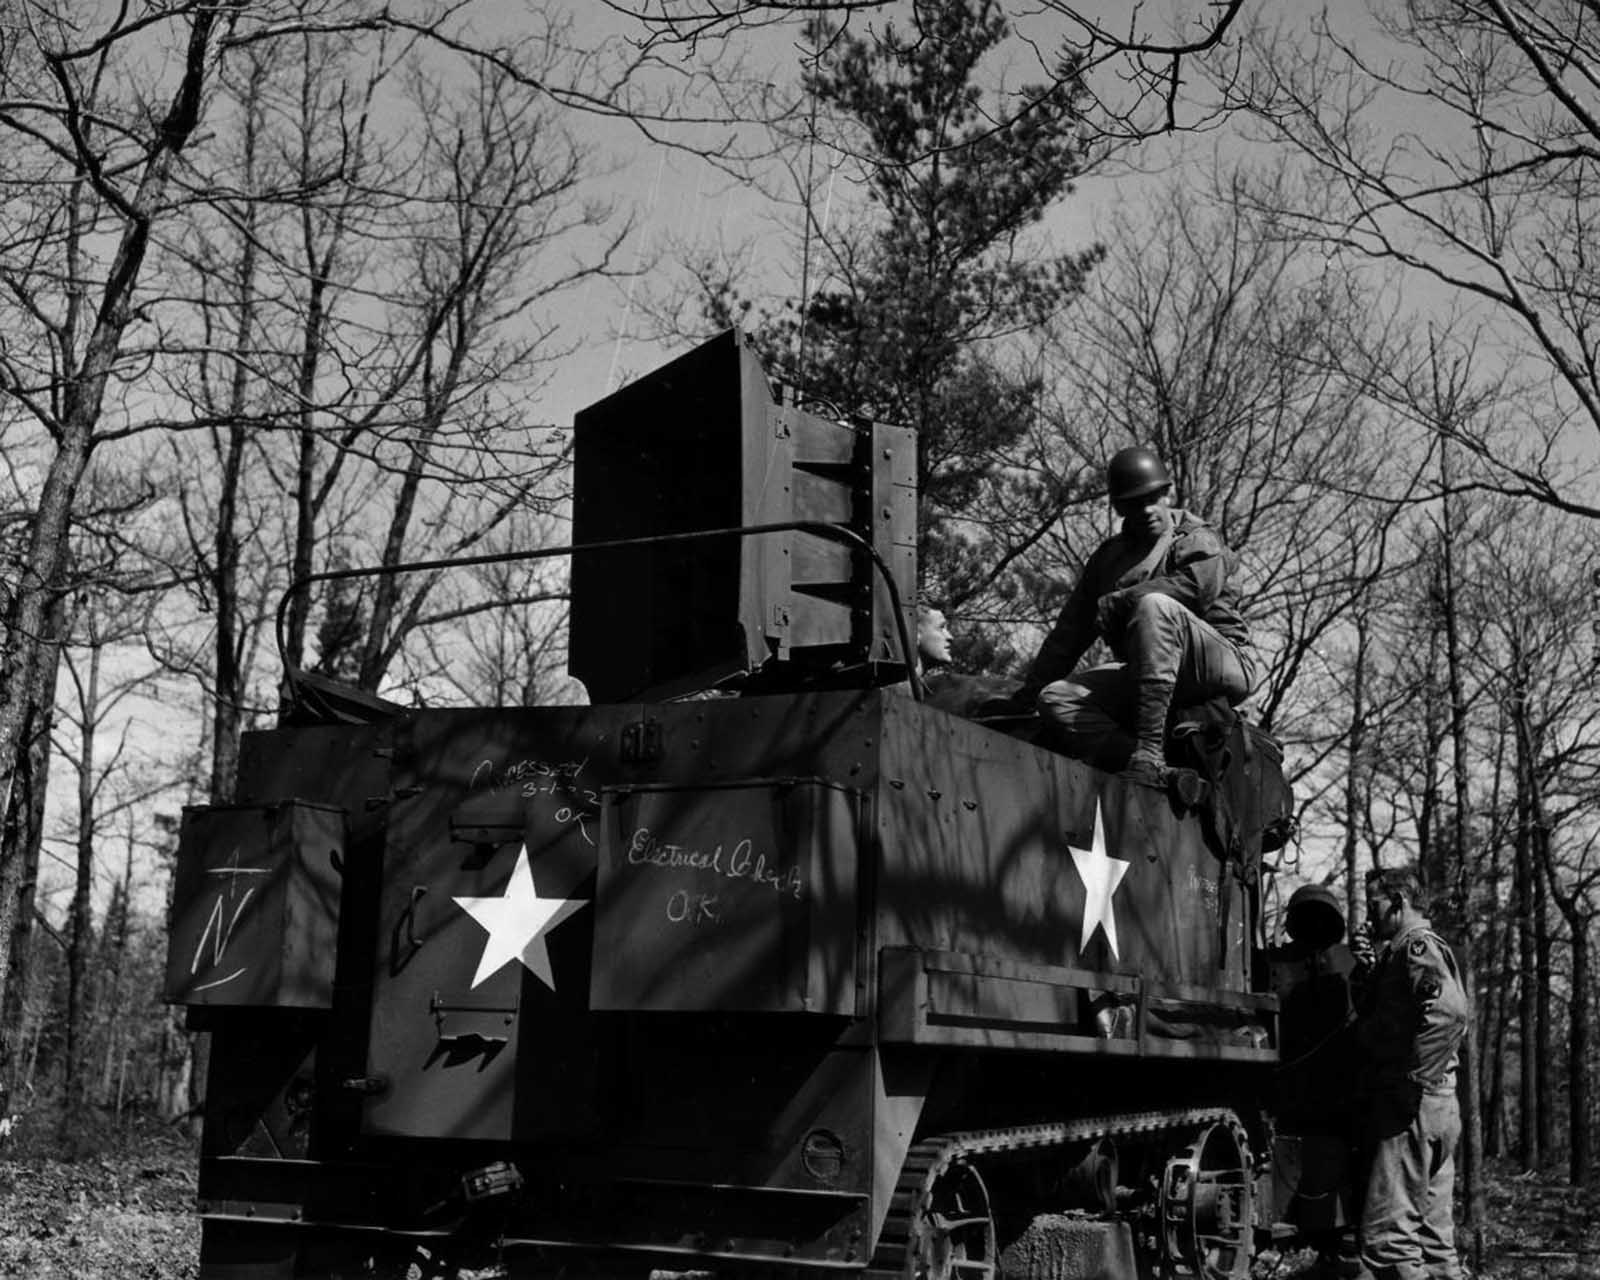 To complete the experience, the Ghost Army also used sonic deception, helped by engineers from Bell Labs. The team recorded sounds of various units onto a series of sound-effects records, each up to 30 minutes long. The sounds were recorded on state-of-the-art equipment, and then played back with powerful amplifiers and speakers that could be heard 15 miles (24 km) away.